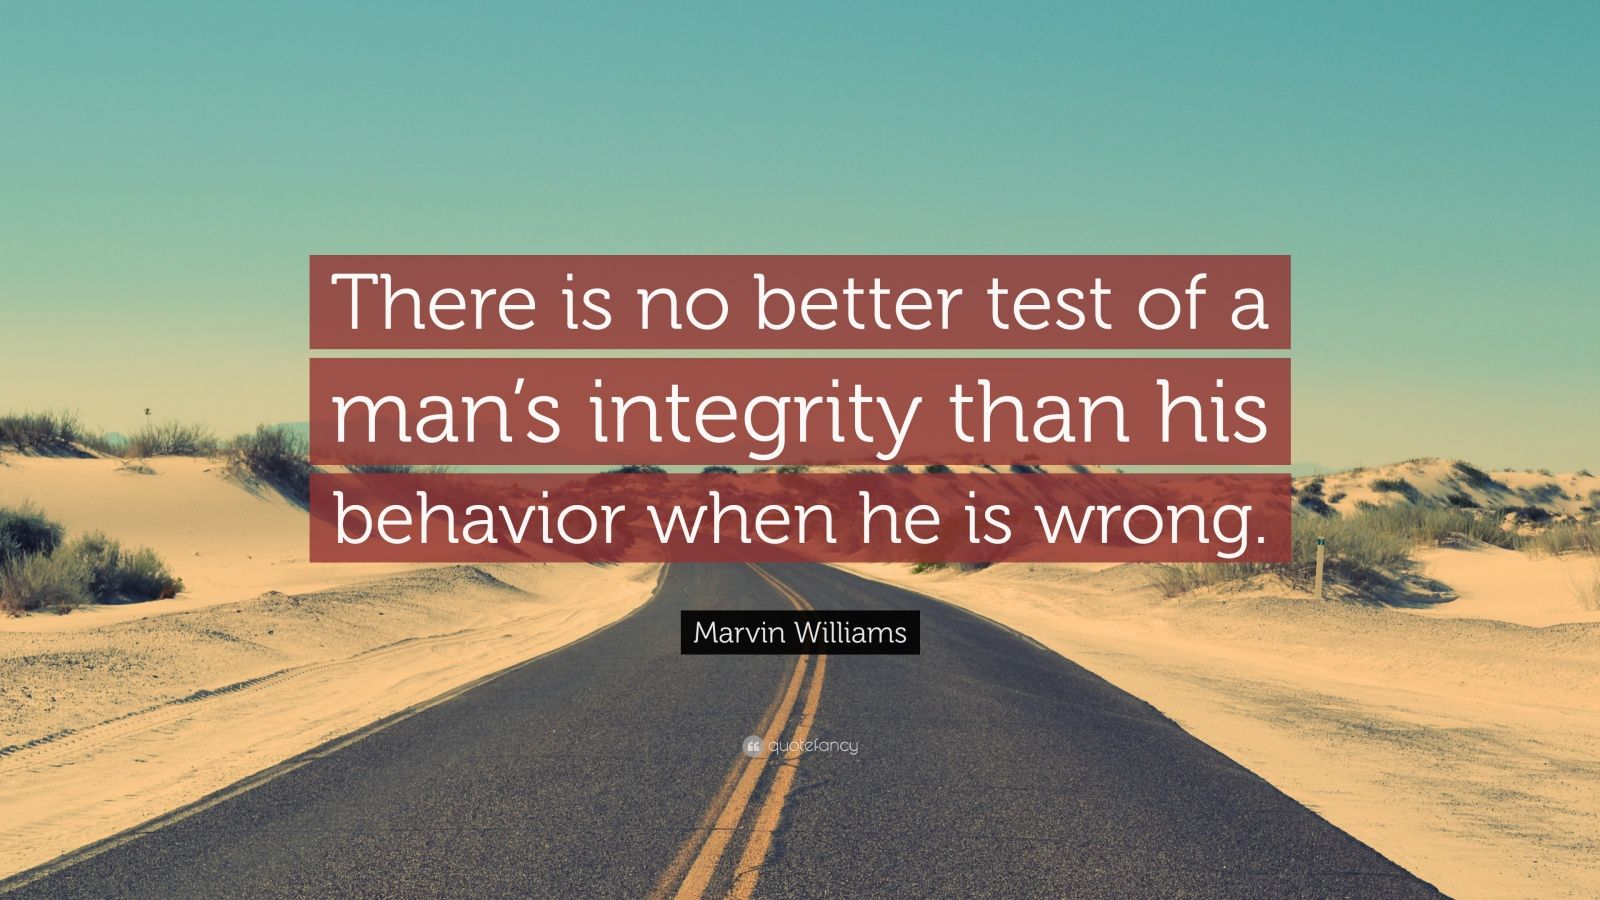 """Marvin Williams Quote: """"There is no better test of a man's integrity than his behavior when he is wrong."""""""